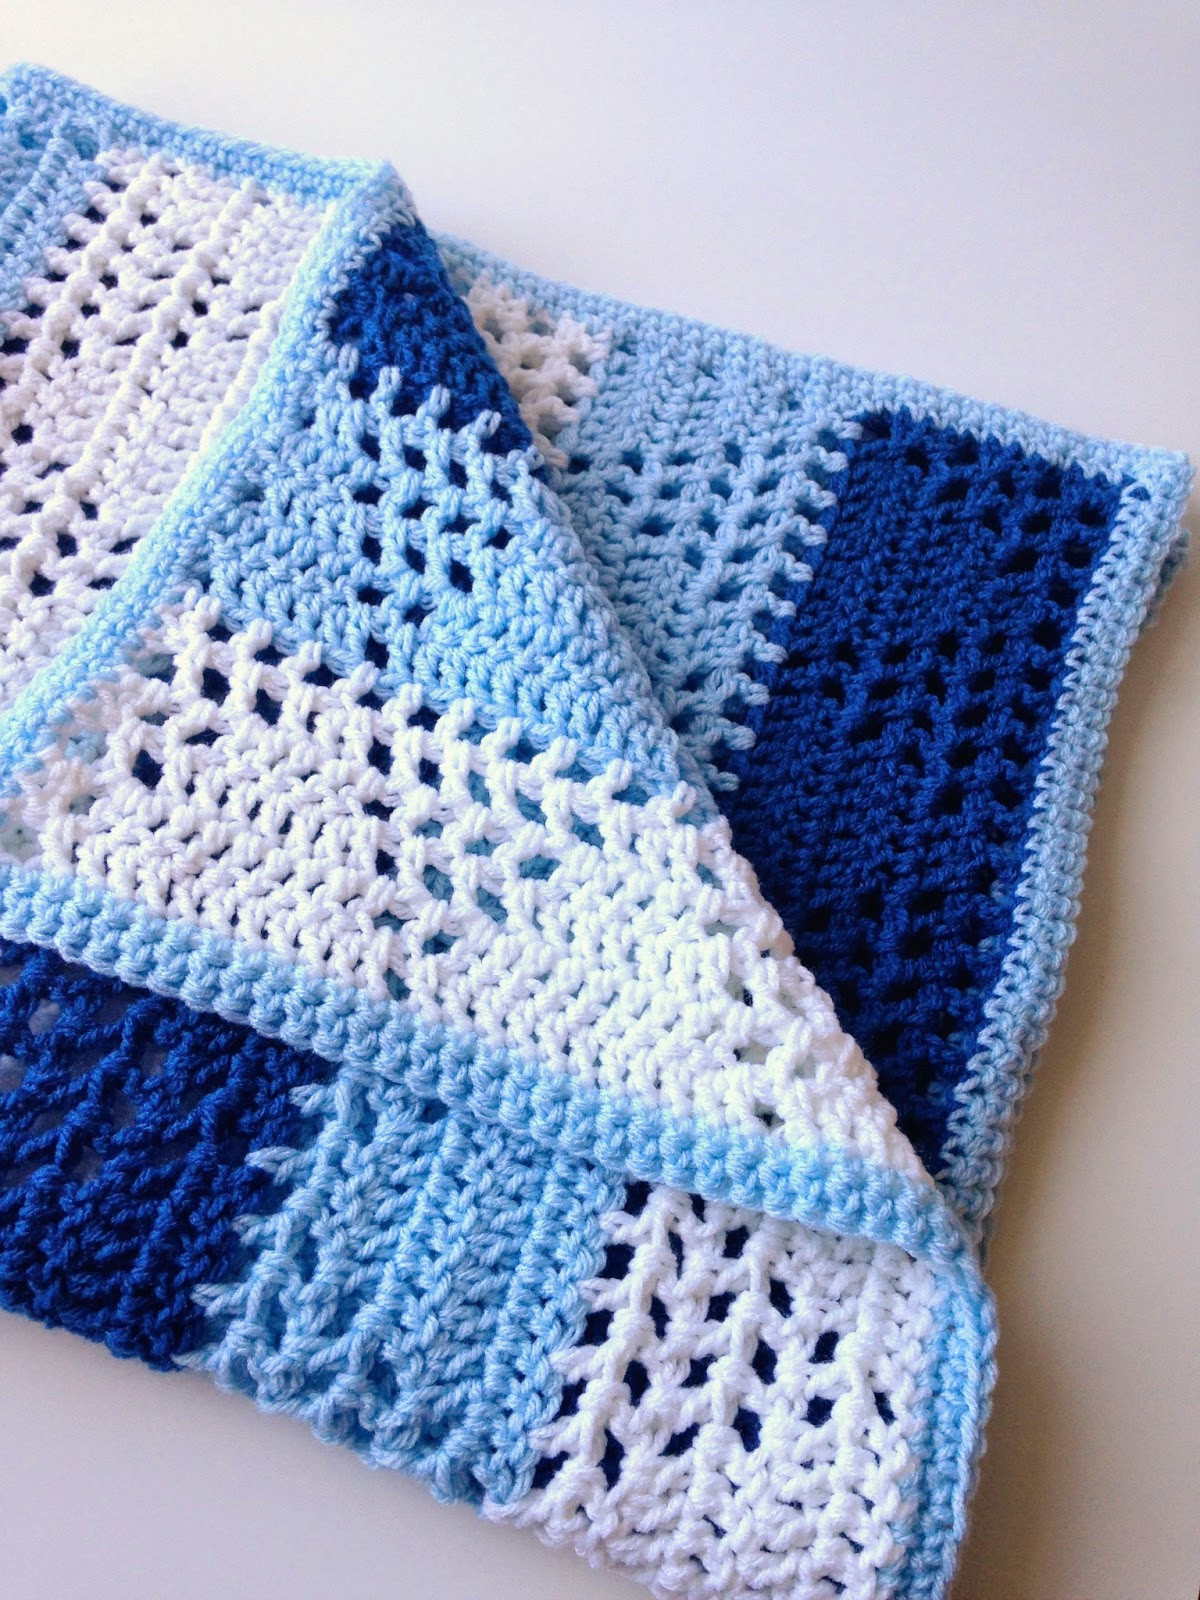 Baby Boy Crochet Blanket Patterns Awesome 5 Little Monsters Triangles & Stripes Baby Blanket Of Baby Boy Crochet Blanket Patterns Best Of 10 Beautiful Baby Blanket Free Patterns